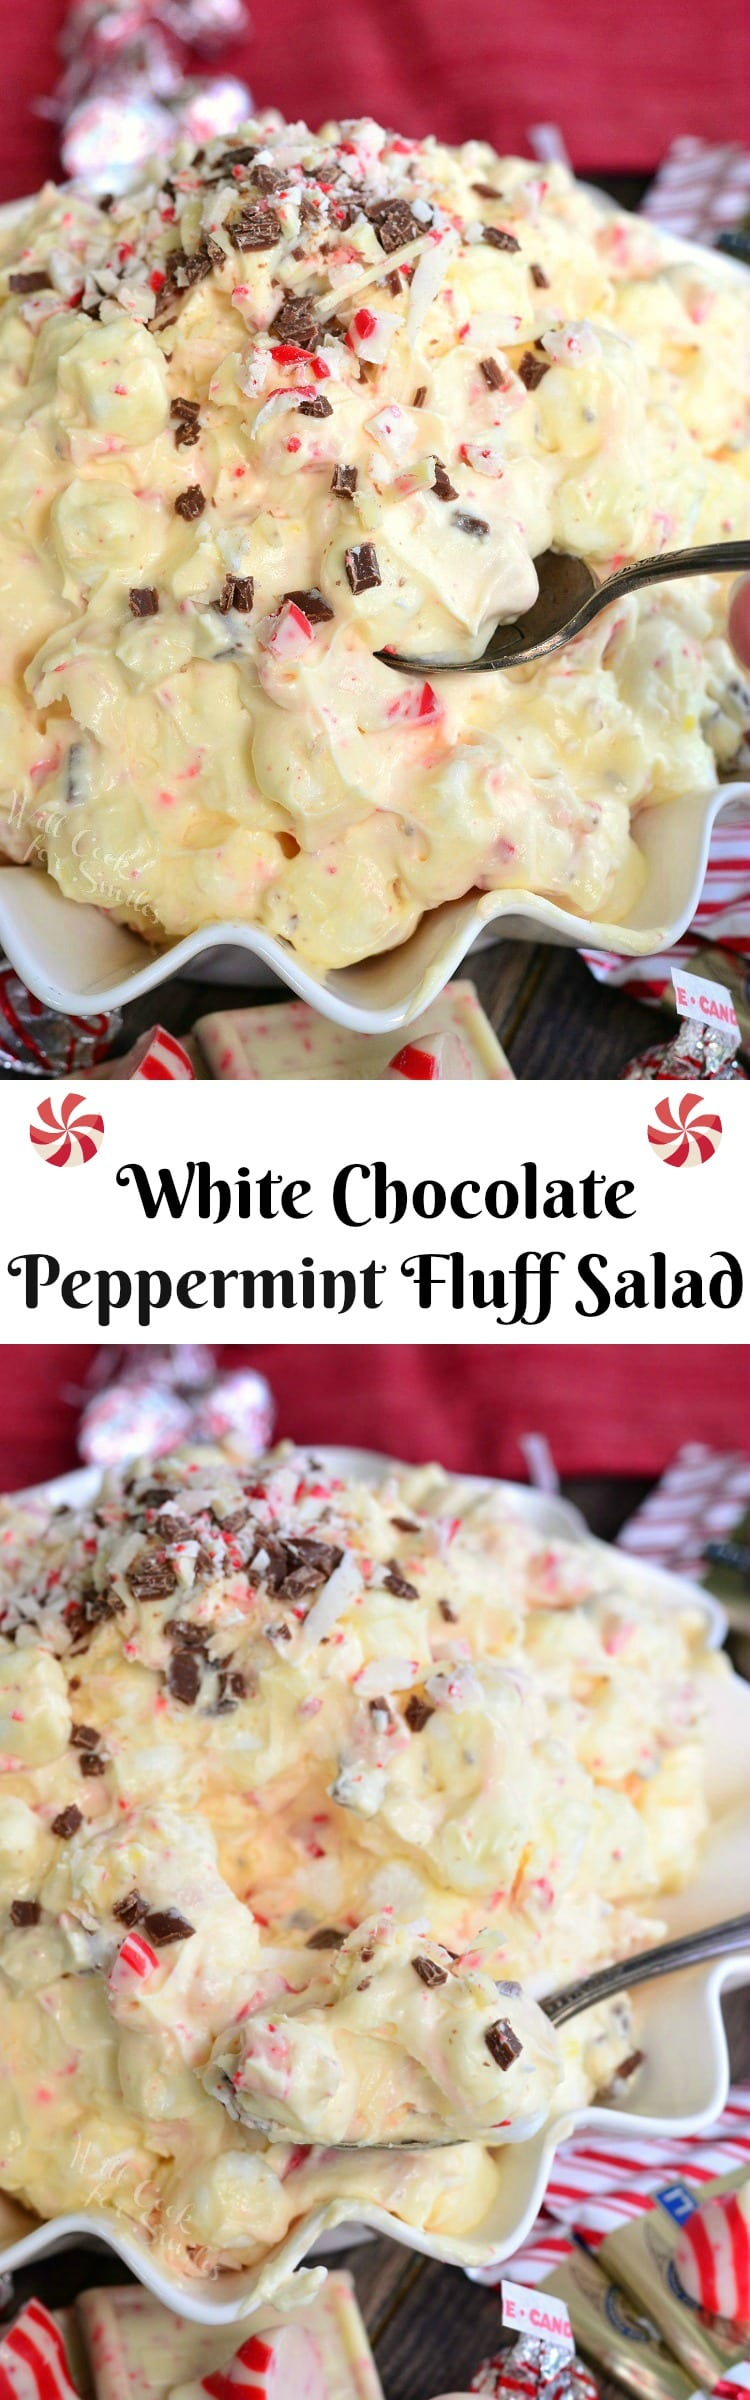 White Chocolate Peppermint Fluff Salad with a spoon in a white bowl collage